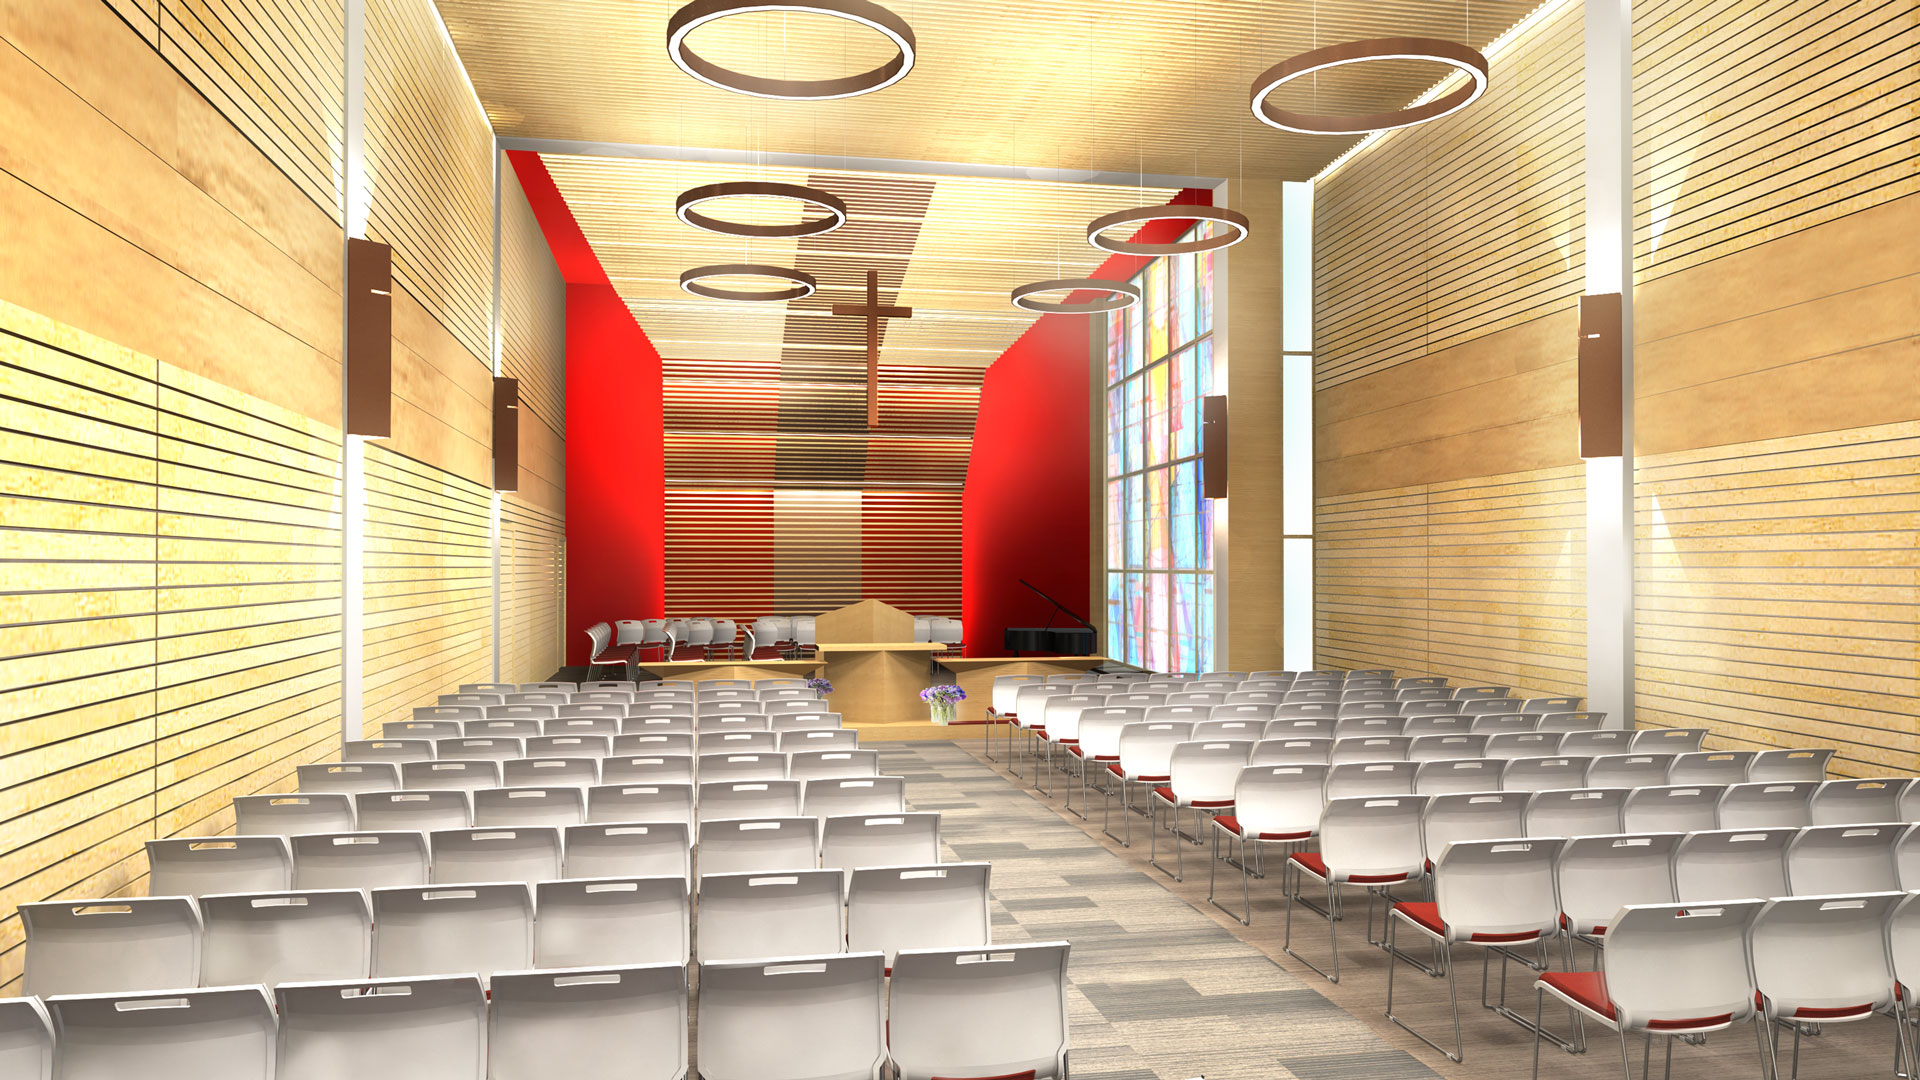 Interior rendering of the church, showing the stage and sitting areas.